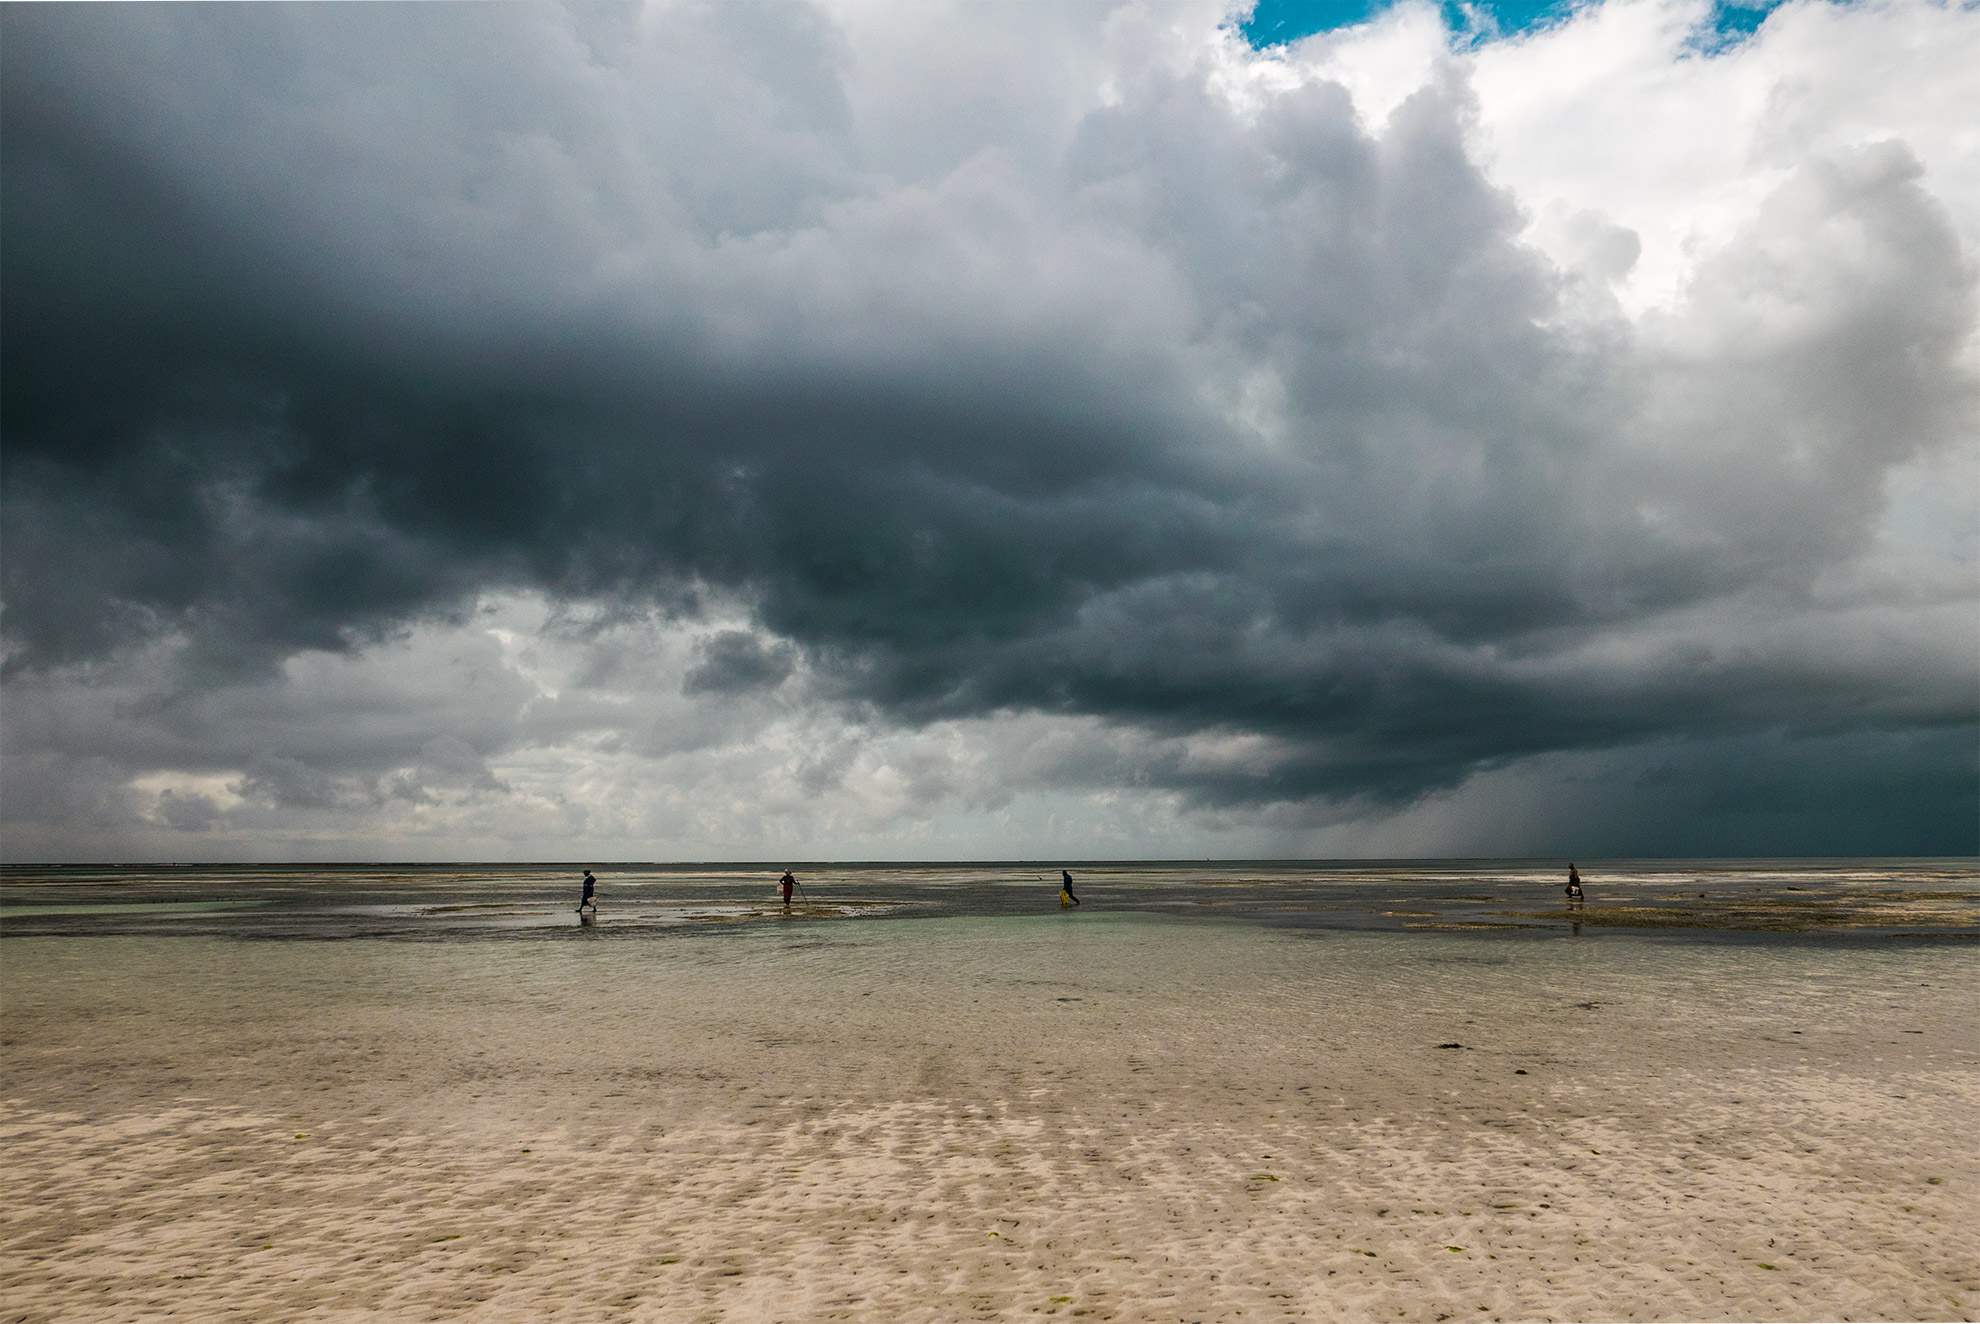 Dark clouds over a beach